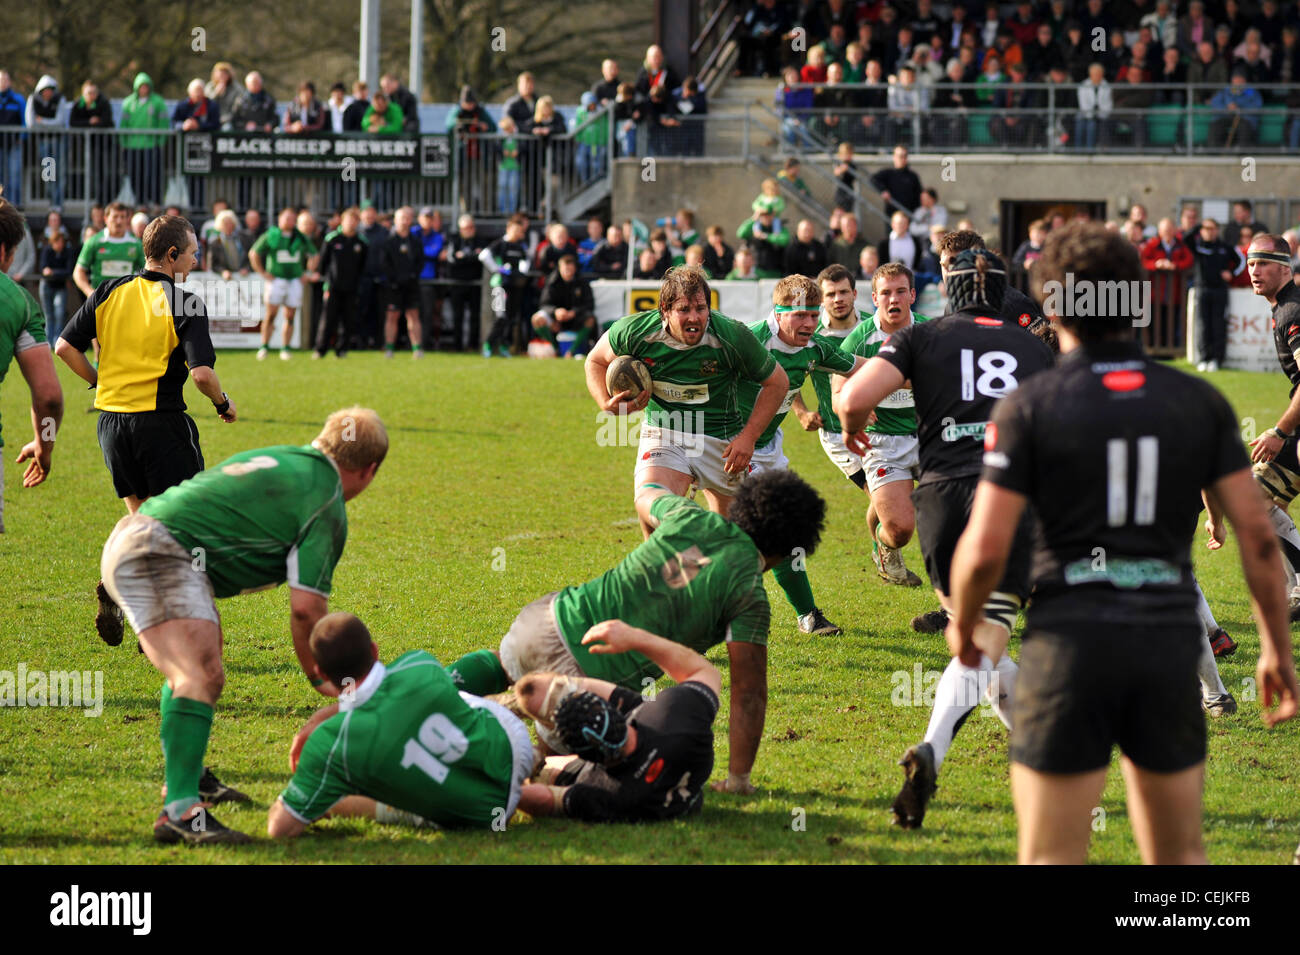 Rugby game, Wharfedale Rugby Union Football Club, North Yorkshire UK Stock Photo